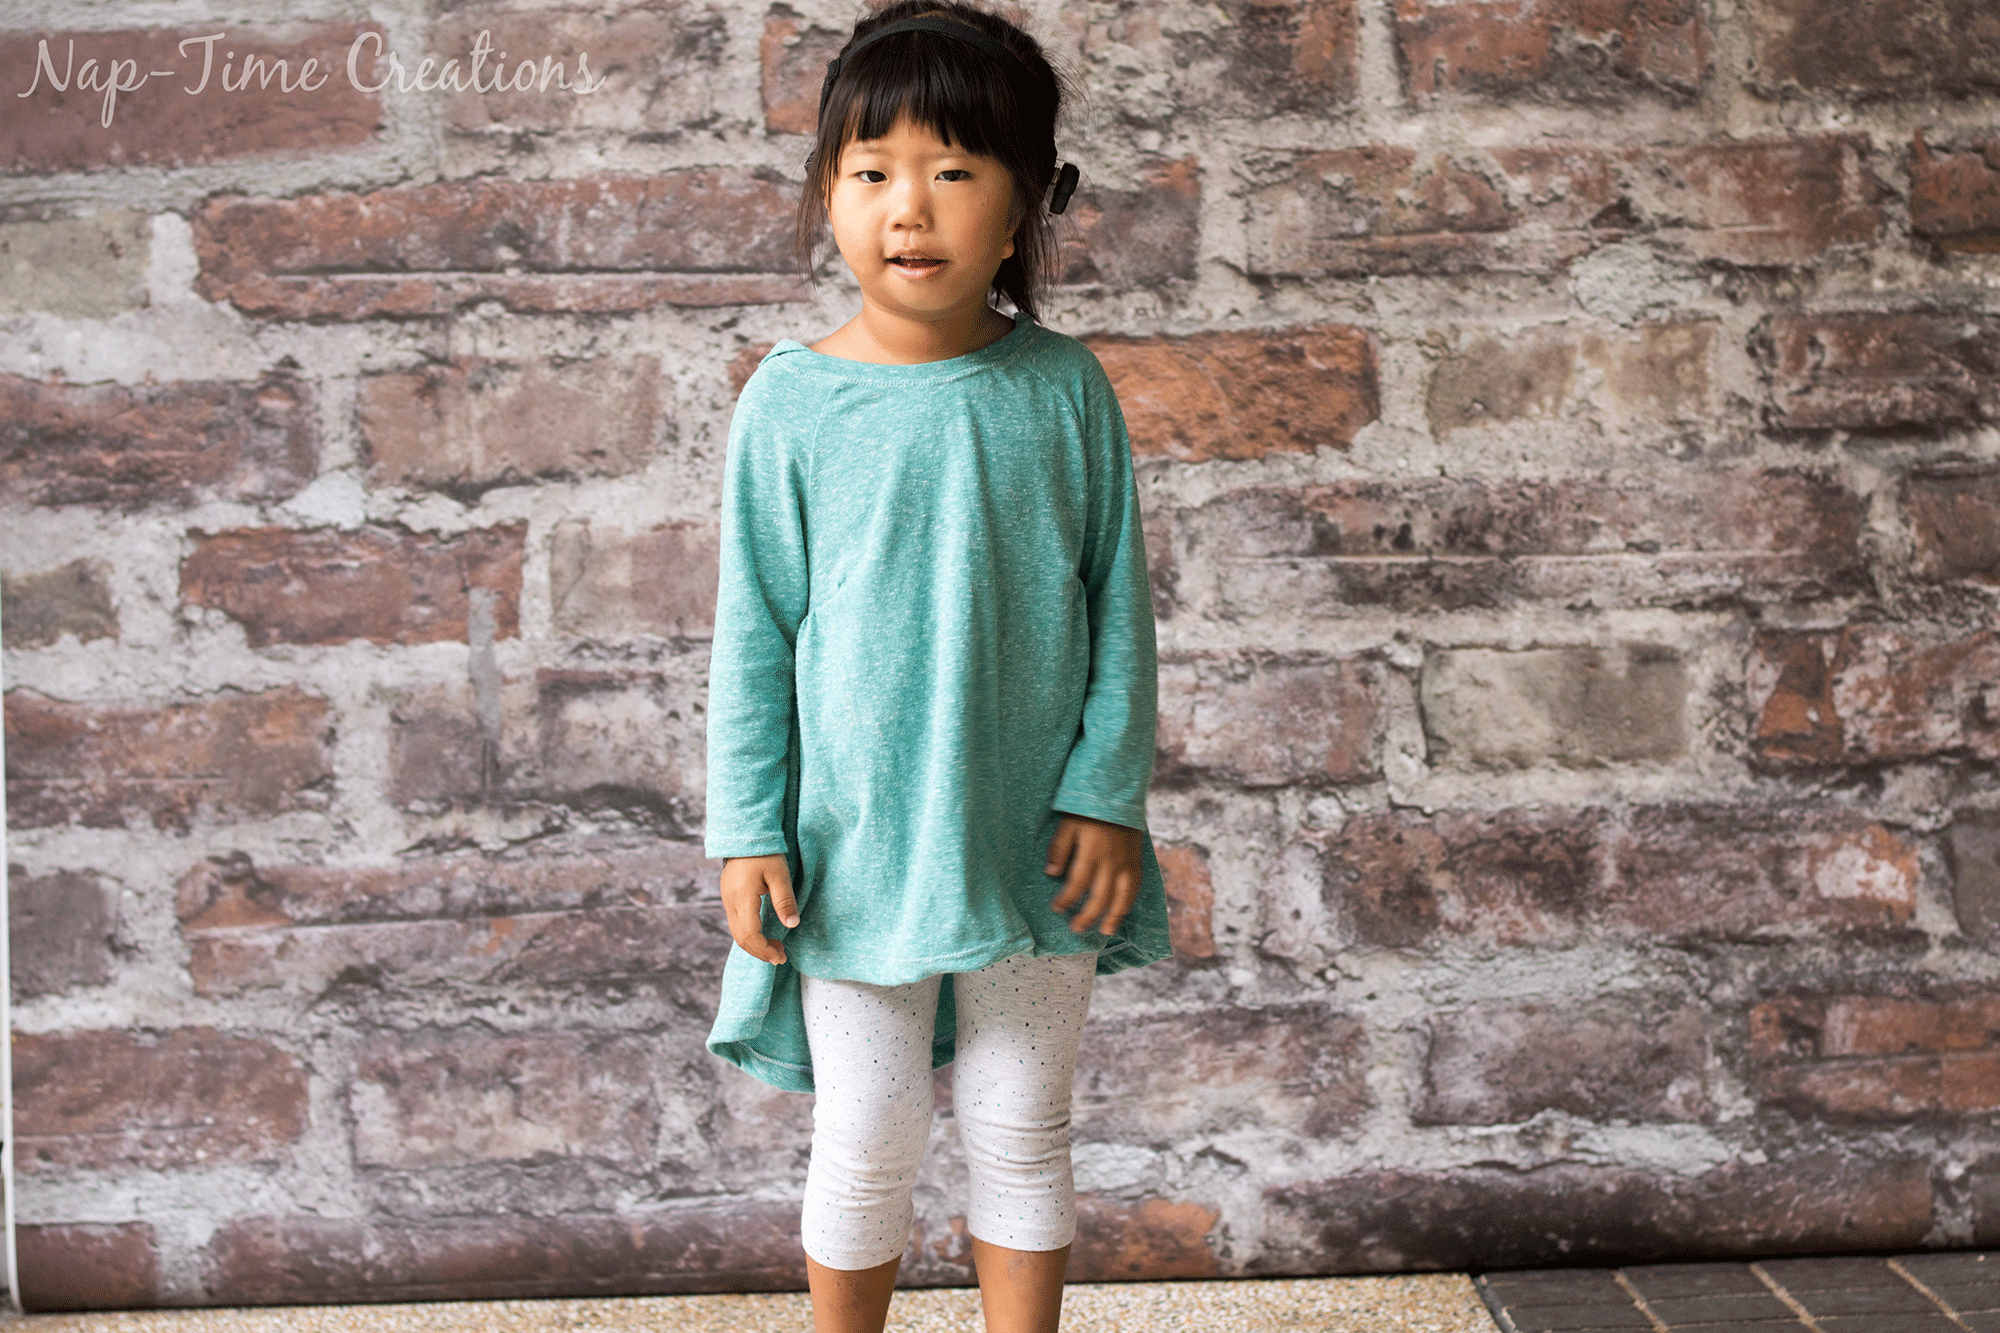 the-twirly-dress-tutorial-from-nap-time-creations-6